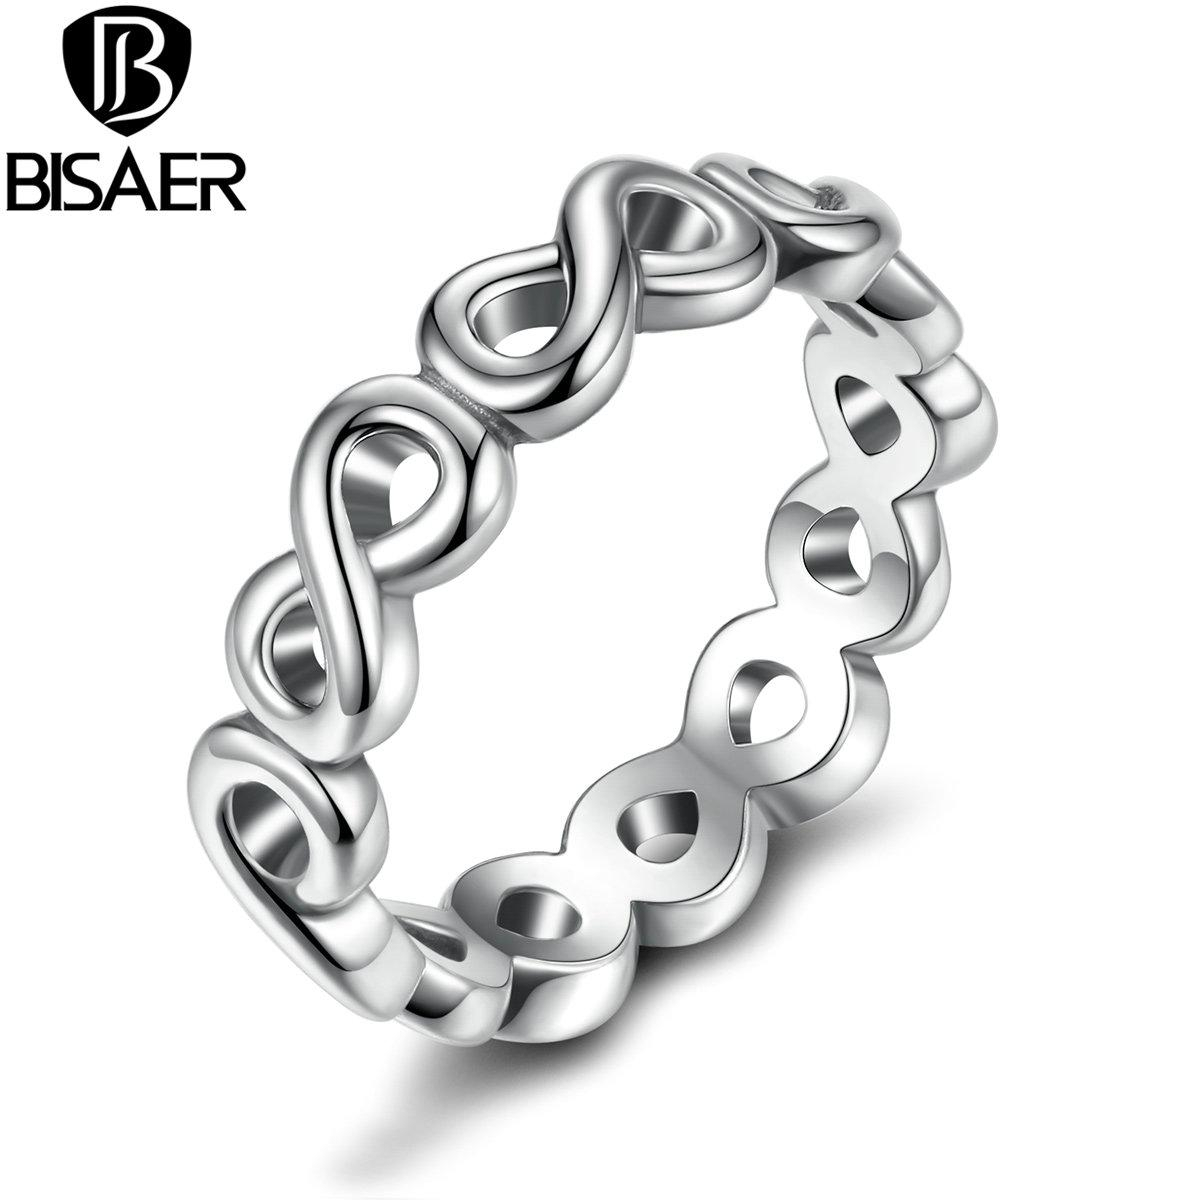 Wholesale Bisaer Classic Bow Knot Friendship Infinity Finger Rings Silver Color Ring For Women Fashion Wedding Jewelry Weu7213 With 2018 Classic Bow Rings (View 2 of 25)